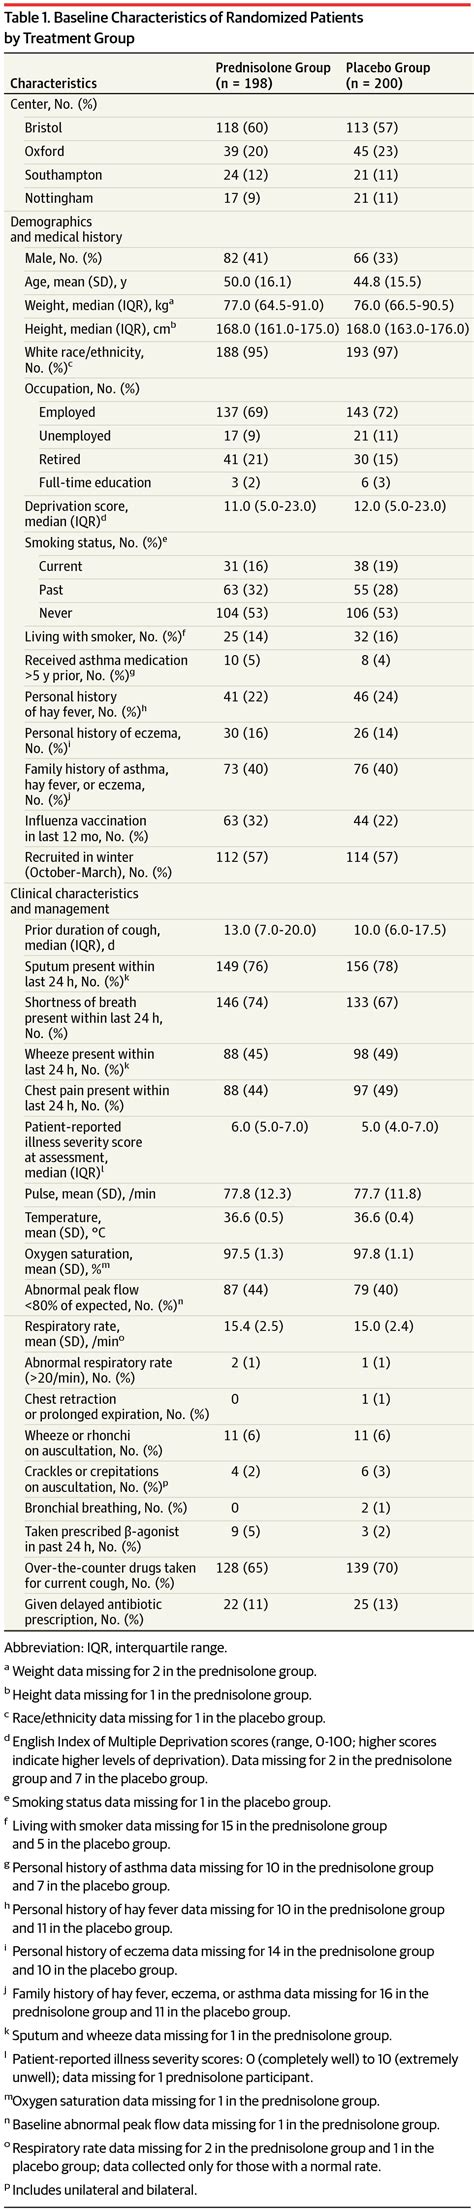 Effect of Oral Prednisolone on Symptom Duration and